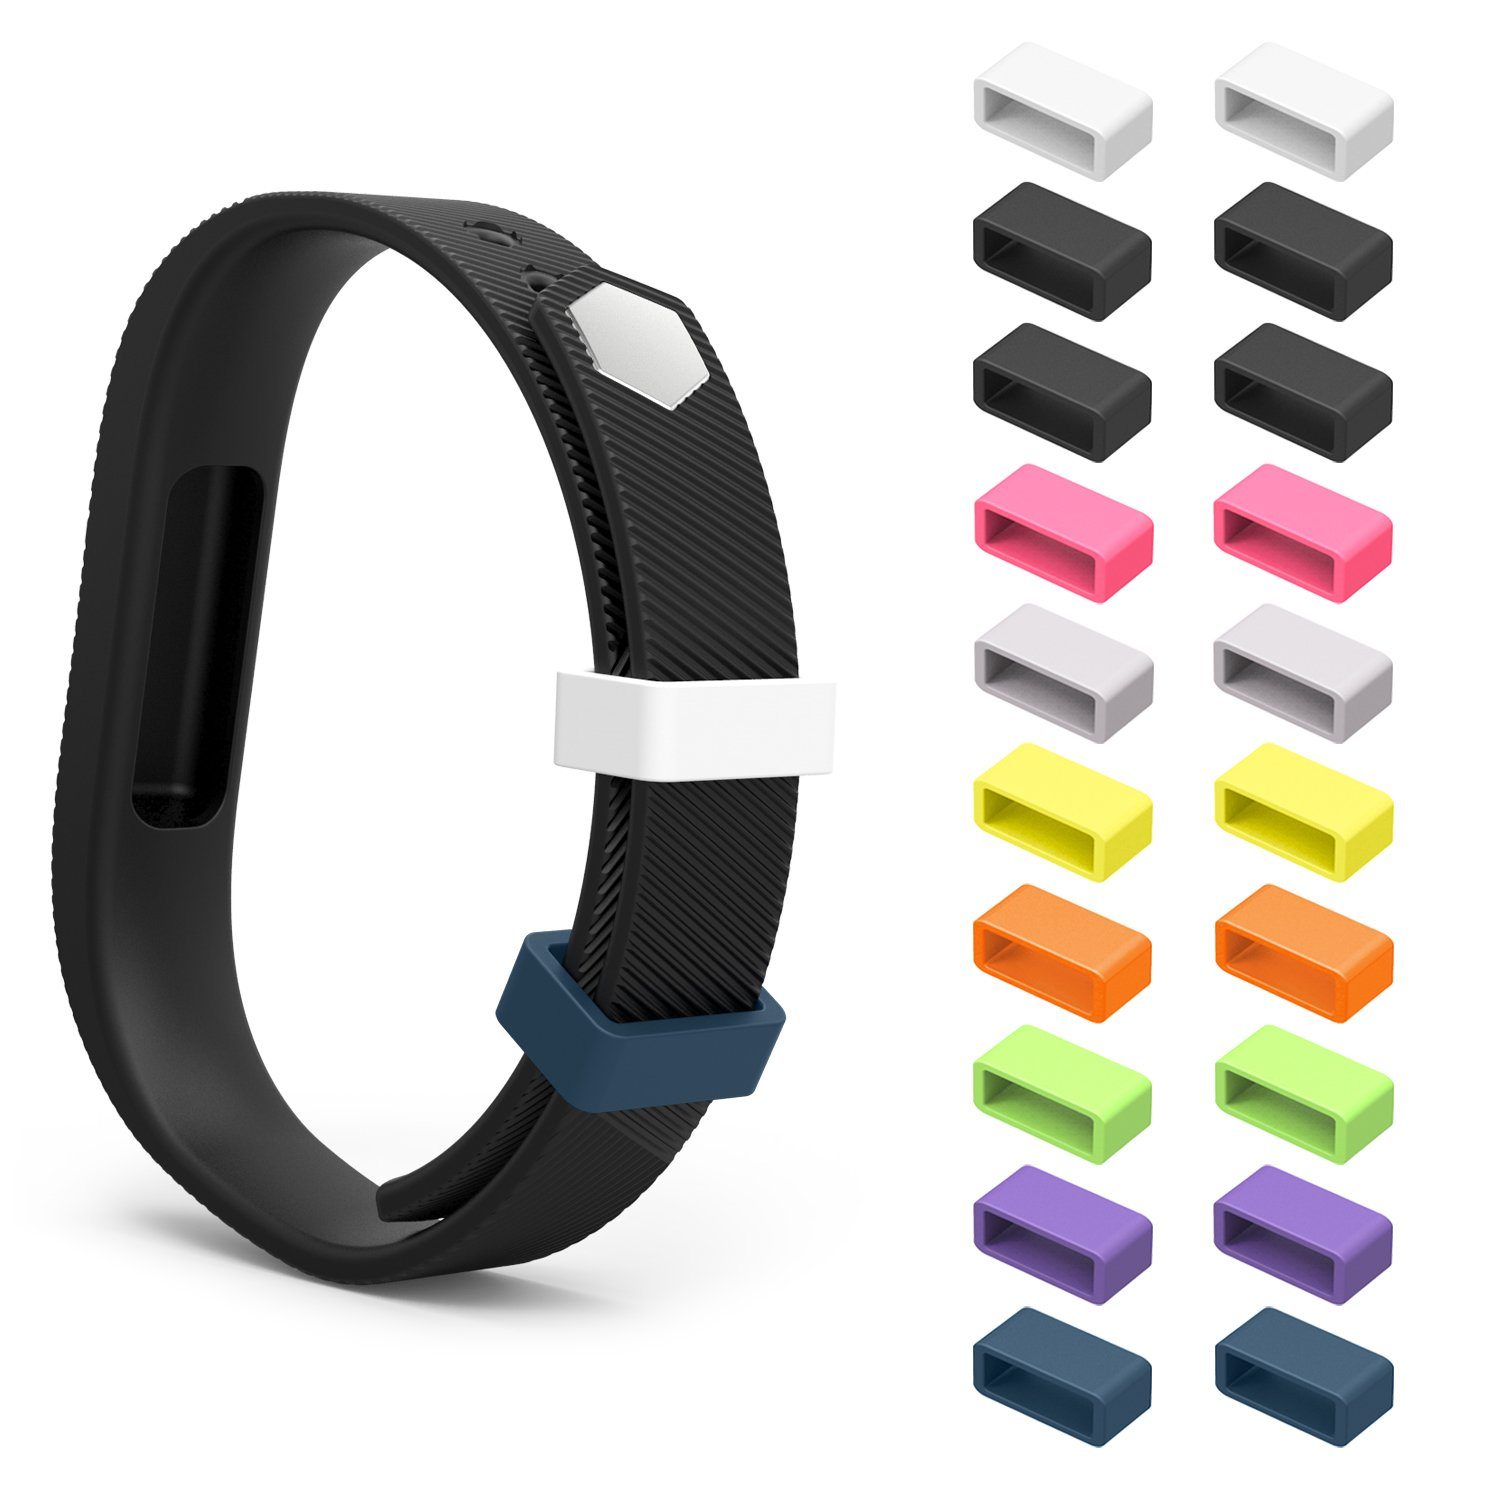 MoKo Fitbit Flex 2 Fastener Ring, [20 PCS] 9 Colours Replacement Silicone Secure Clasps ONLY for Fitbit Flex 2 Wristband, Fix the Tracker Fall Off Problem, Tracker and Wristband NOT Included 4332497076